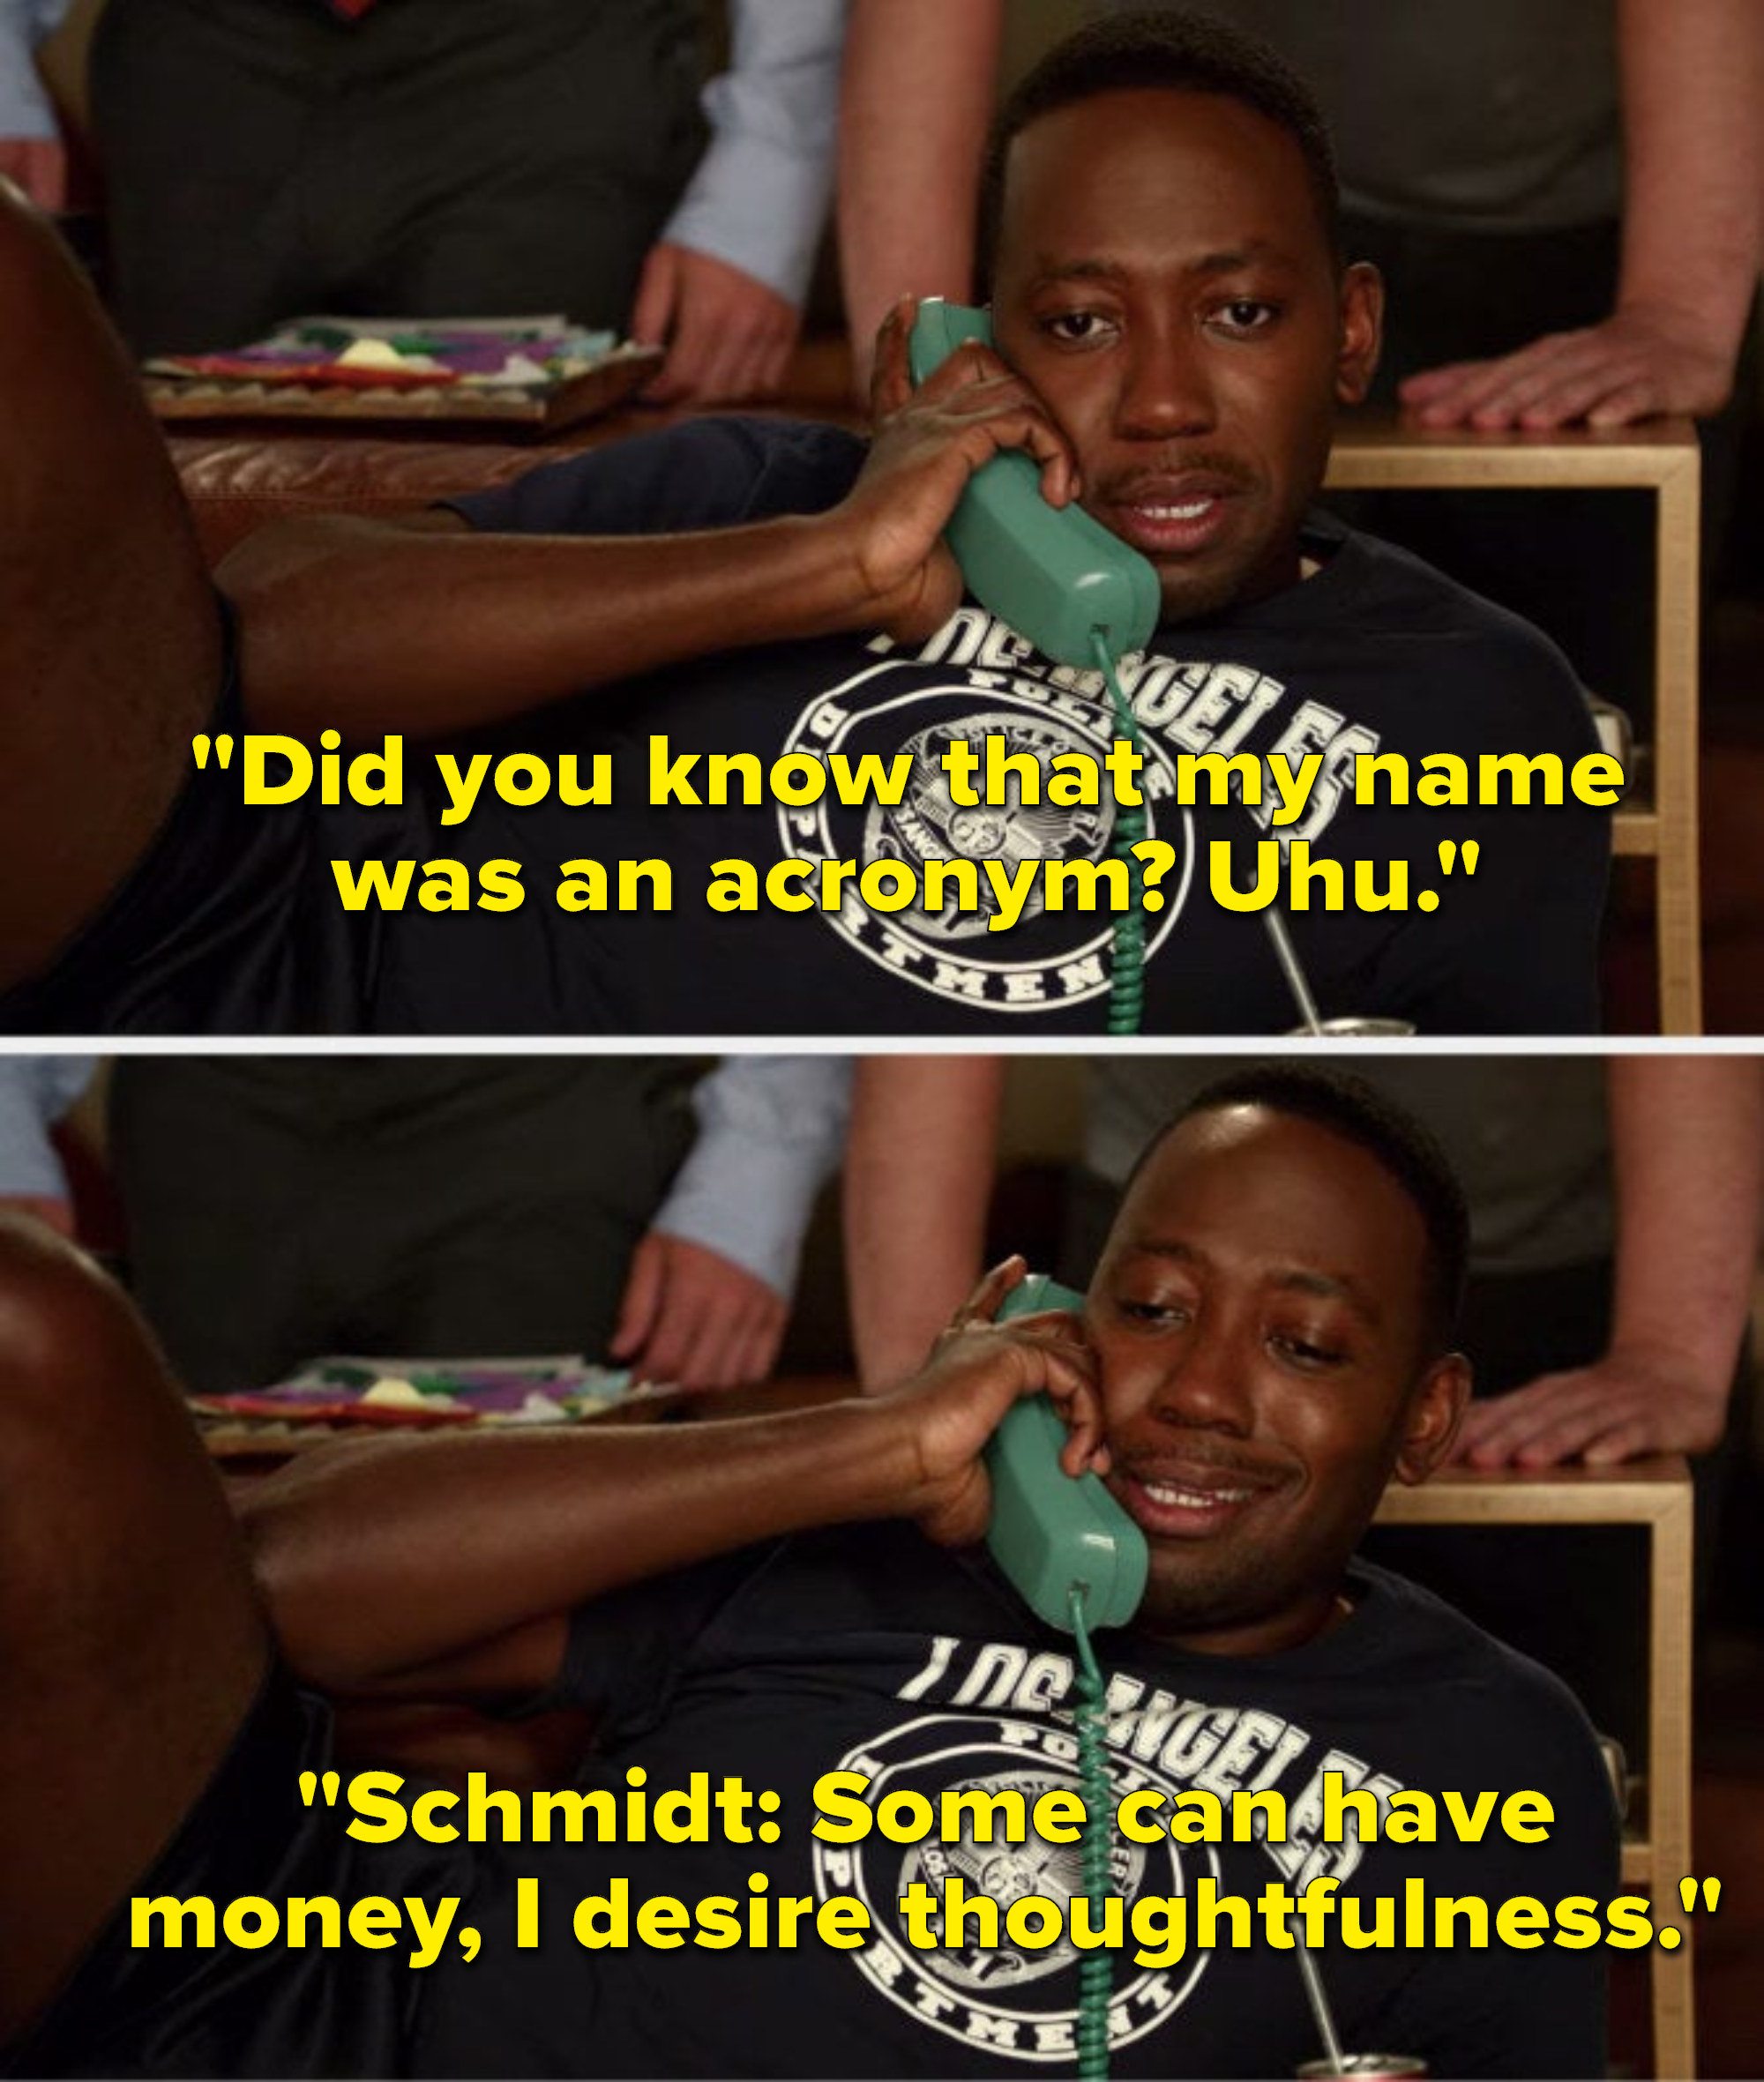 Winston, on the phone, says, Did you know that my name was an acronym, Uhu, Schmidt, Some can have money, I desire thoughtfulness